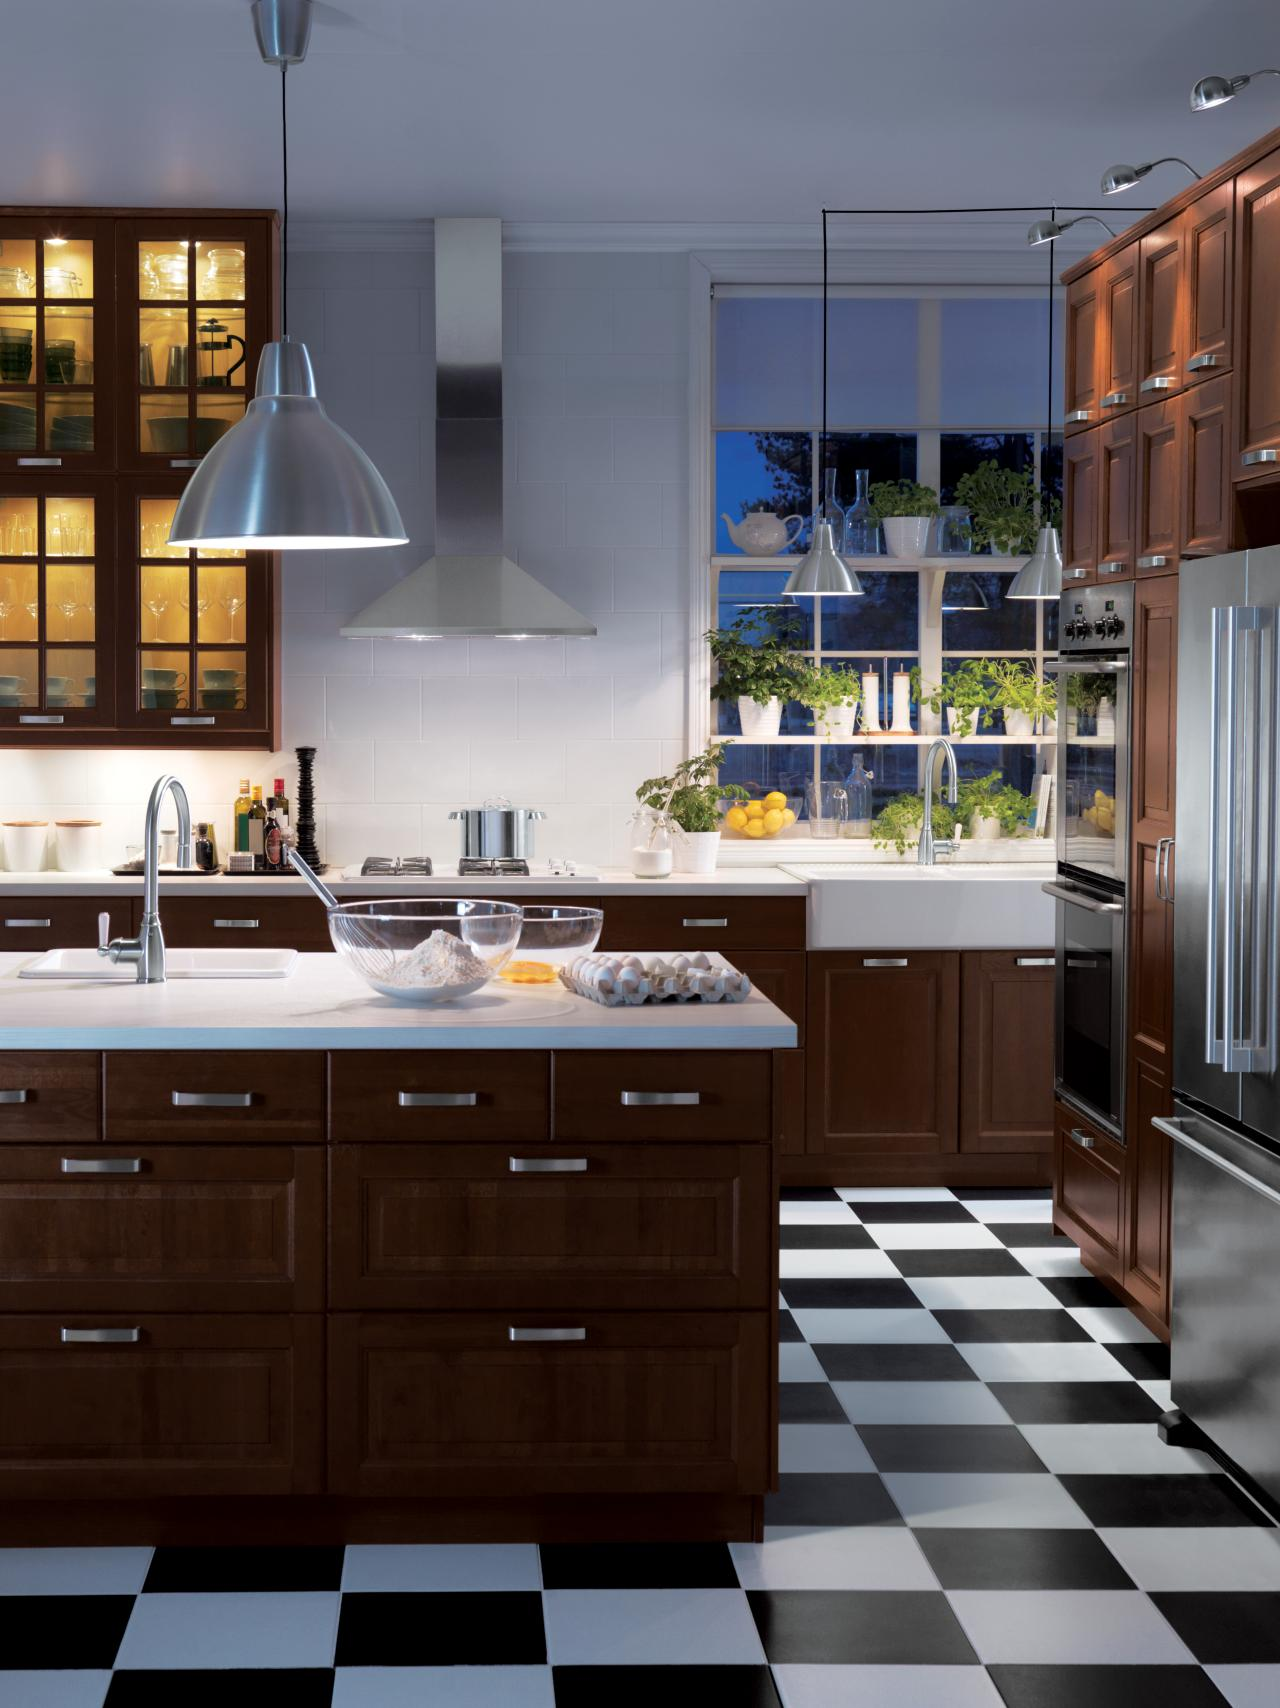 How To Get A Stunning Kitchen On A Budget Hgtv